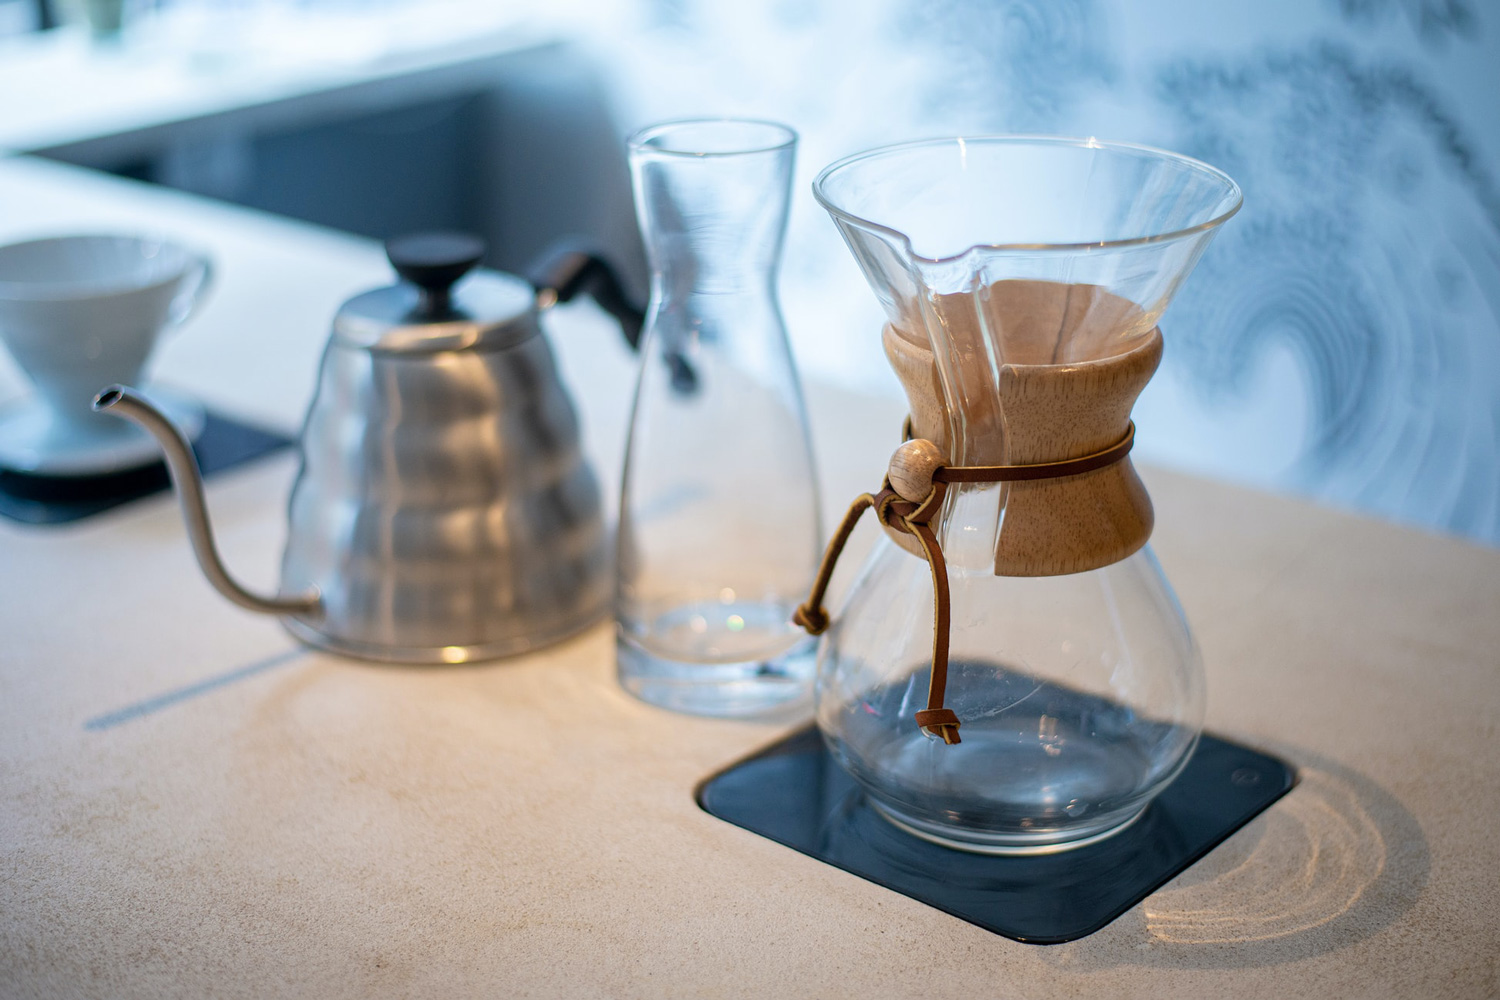 various types of coffee brewing equipment placed side by side on a table